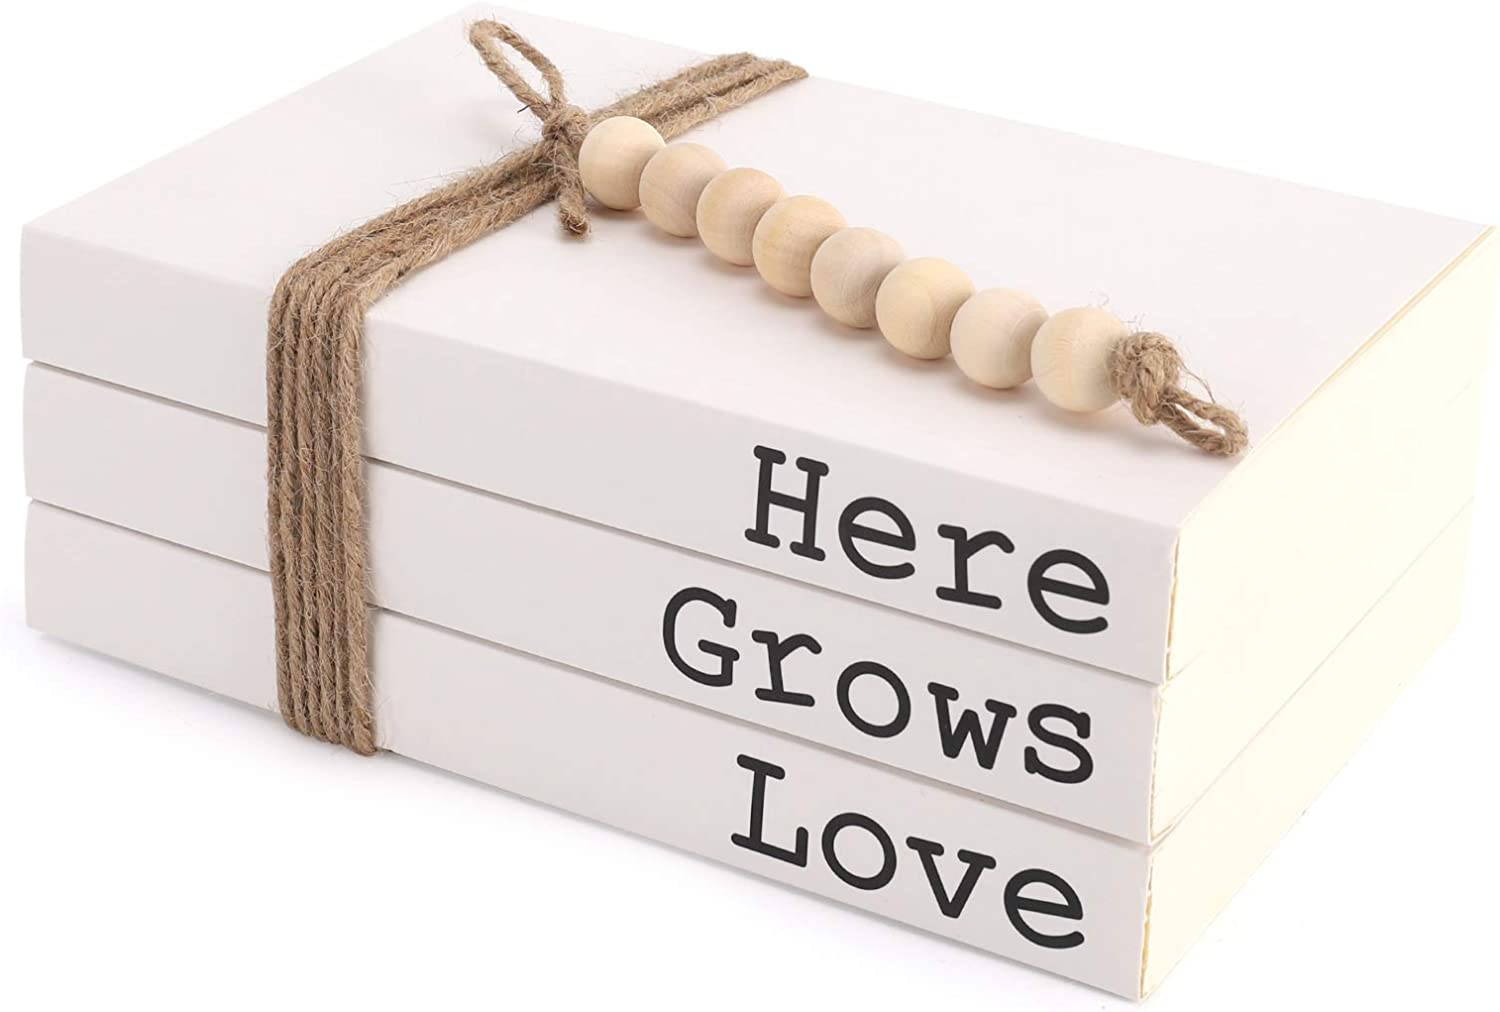 Decorative White Book,Here|Grows|Love Stacked Book(Set of 3),Rustic Stacked Books,Farmhouse Books for Coffee Table and Shelf Decor,Paperback Book